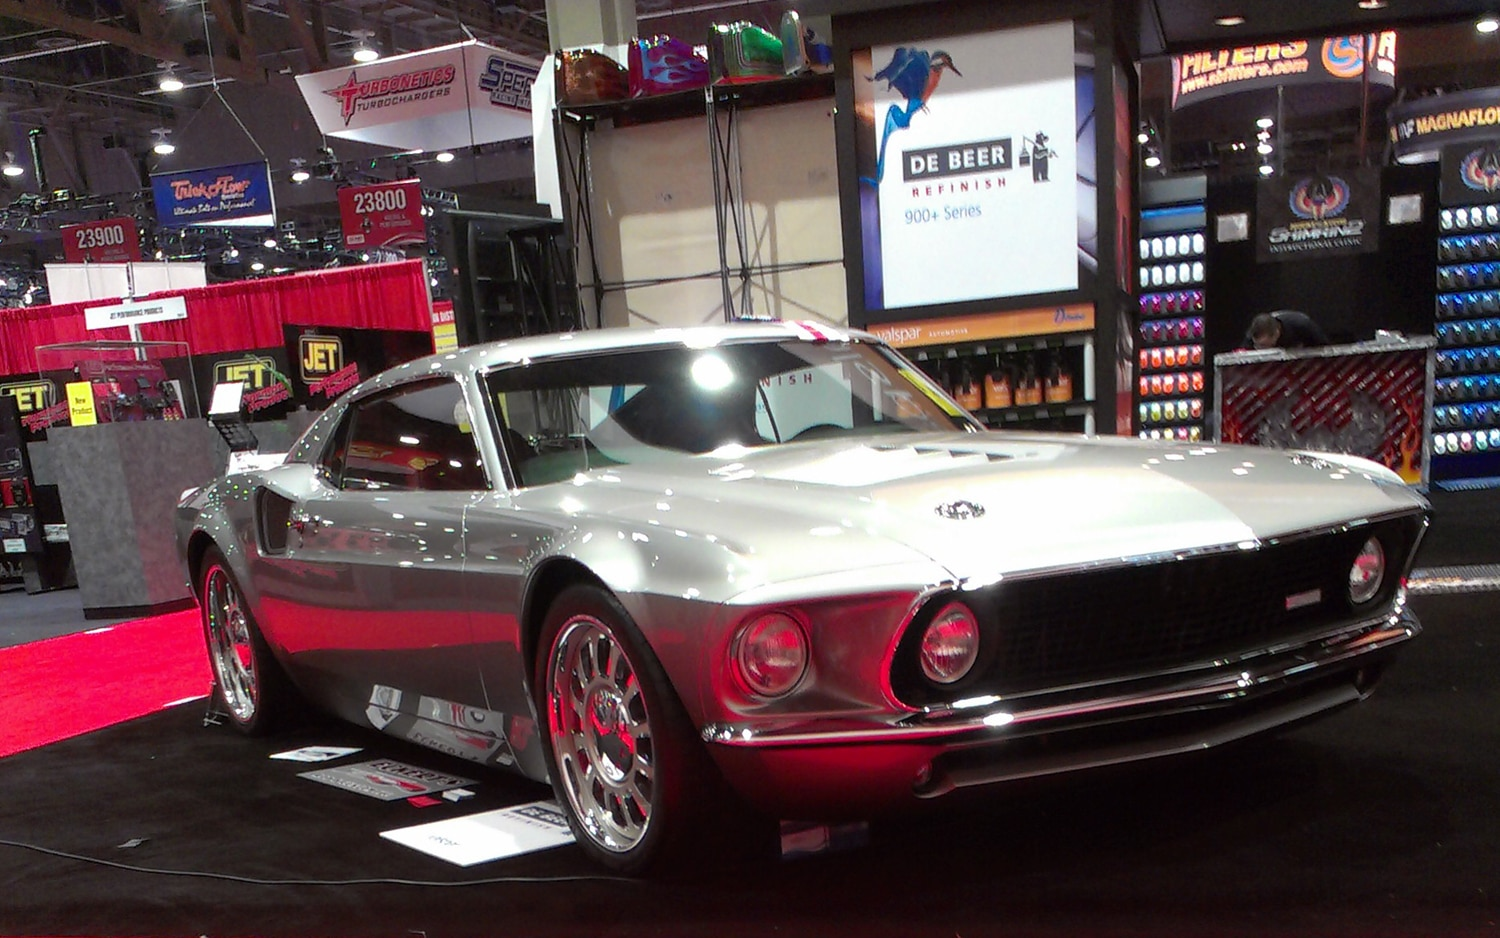 Our Kind Of Hybrid Building The Ford Mach 40 1969 Mustang Christian Seabaugh